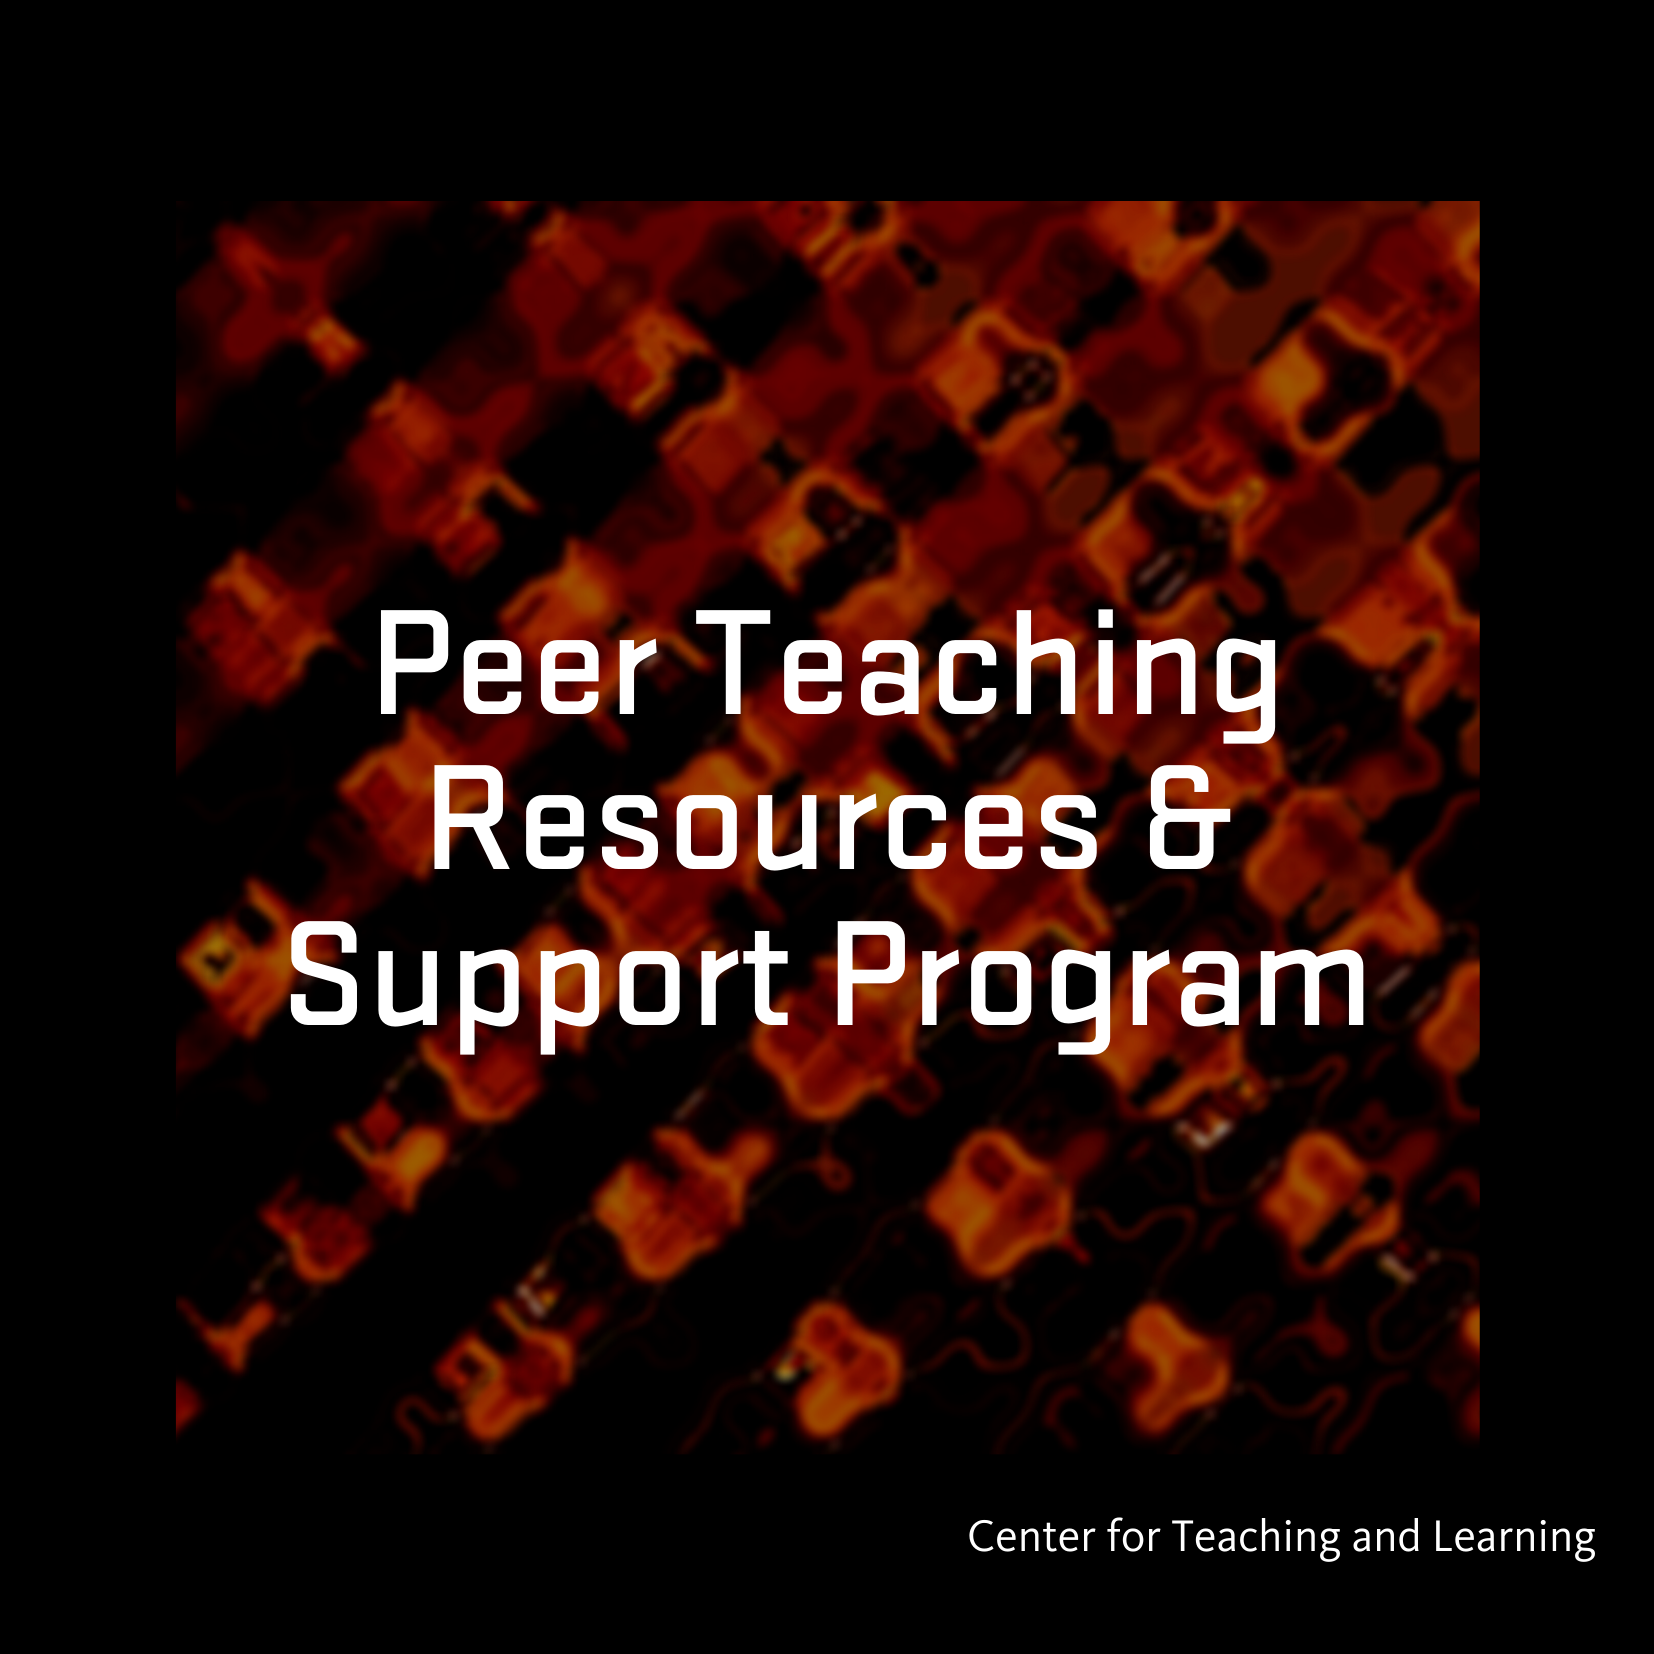 Peer Teaching Resources & Support Program